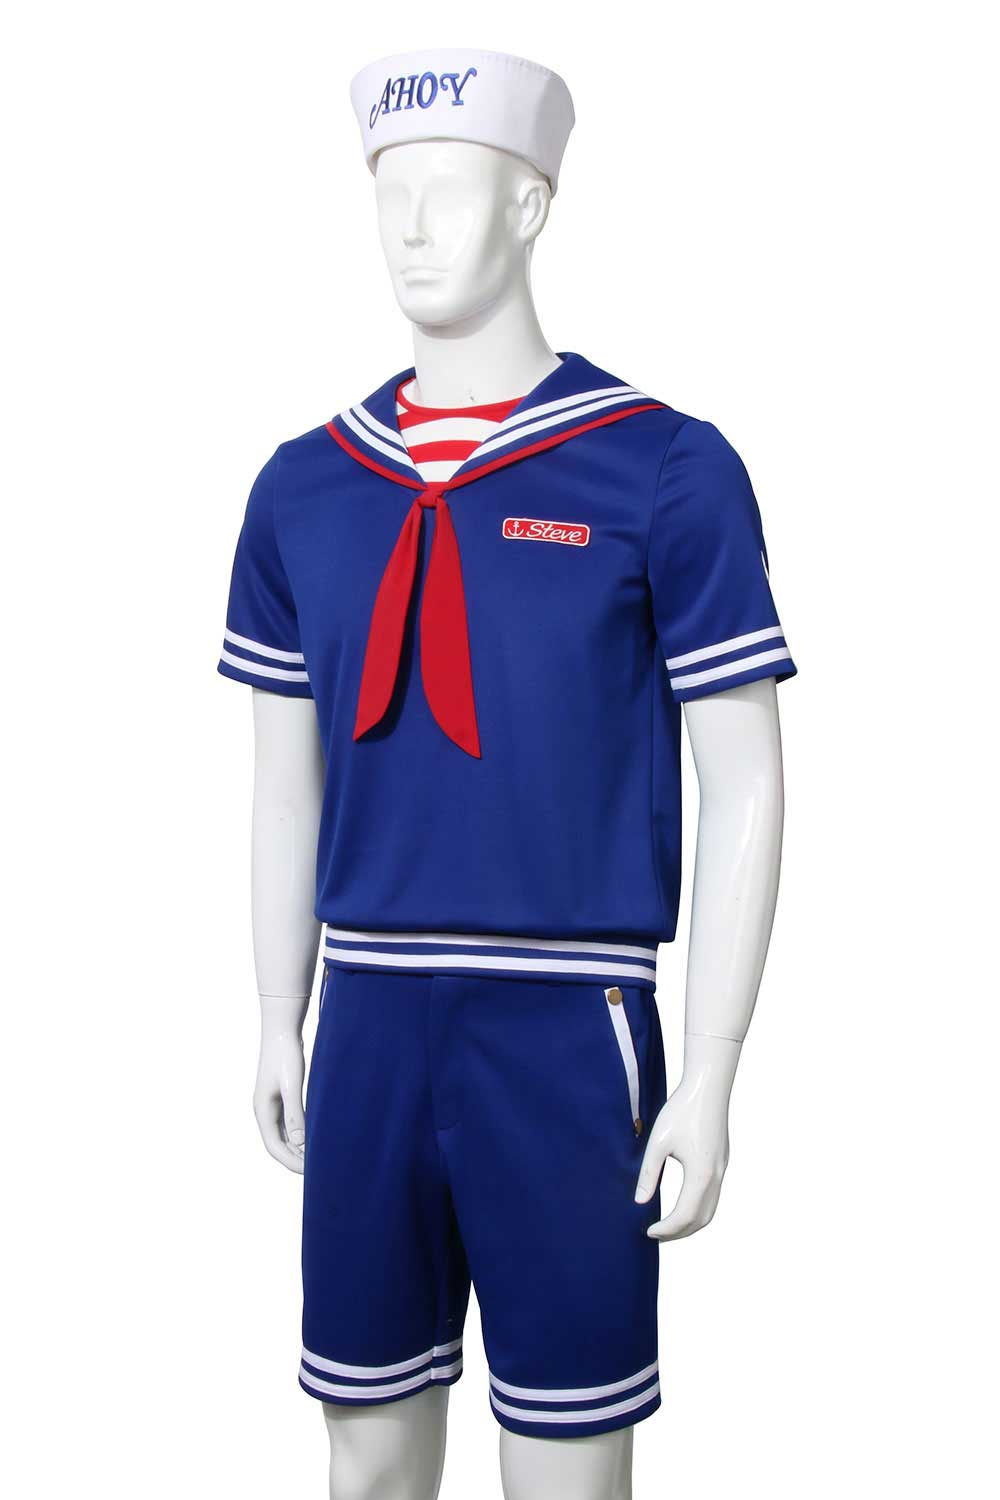 Stranger Things 3 Scoops Ahoy Steve Harrington Cosplay Costume Adult